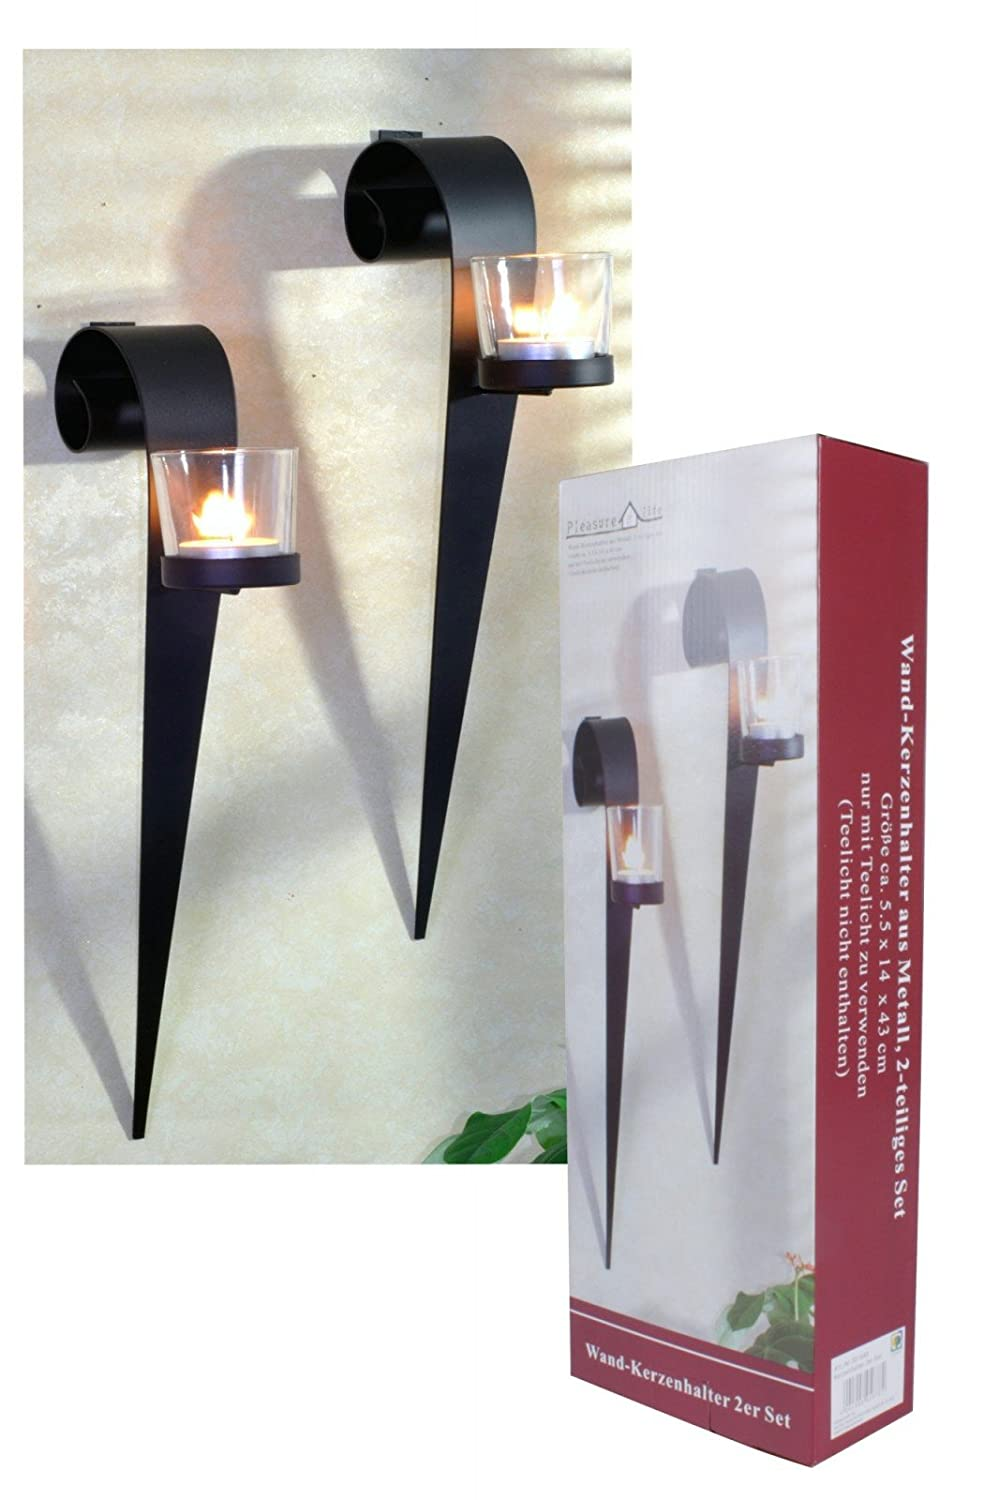 GARDEN PLEASURE 301688 Metal Wall Candle Holders Set of 2 Harms Import